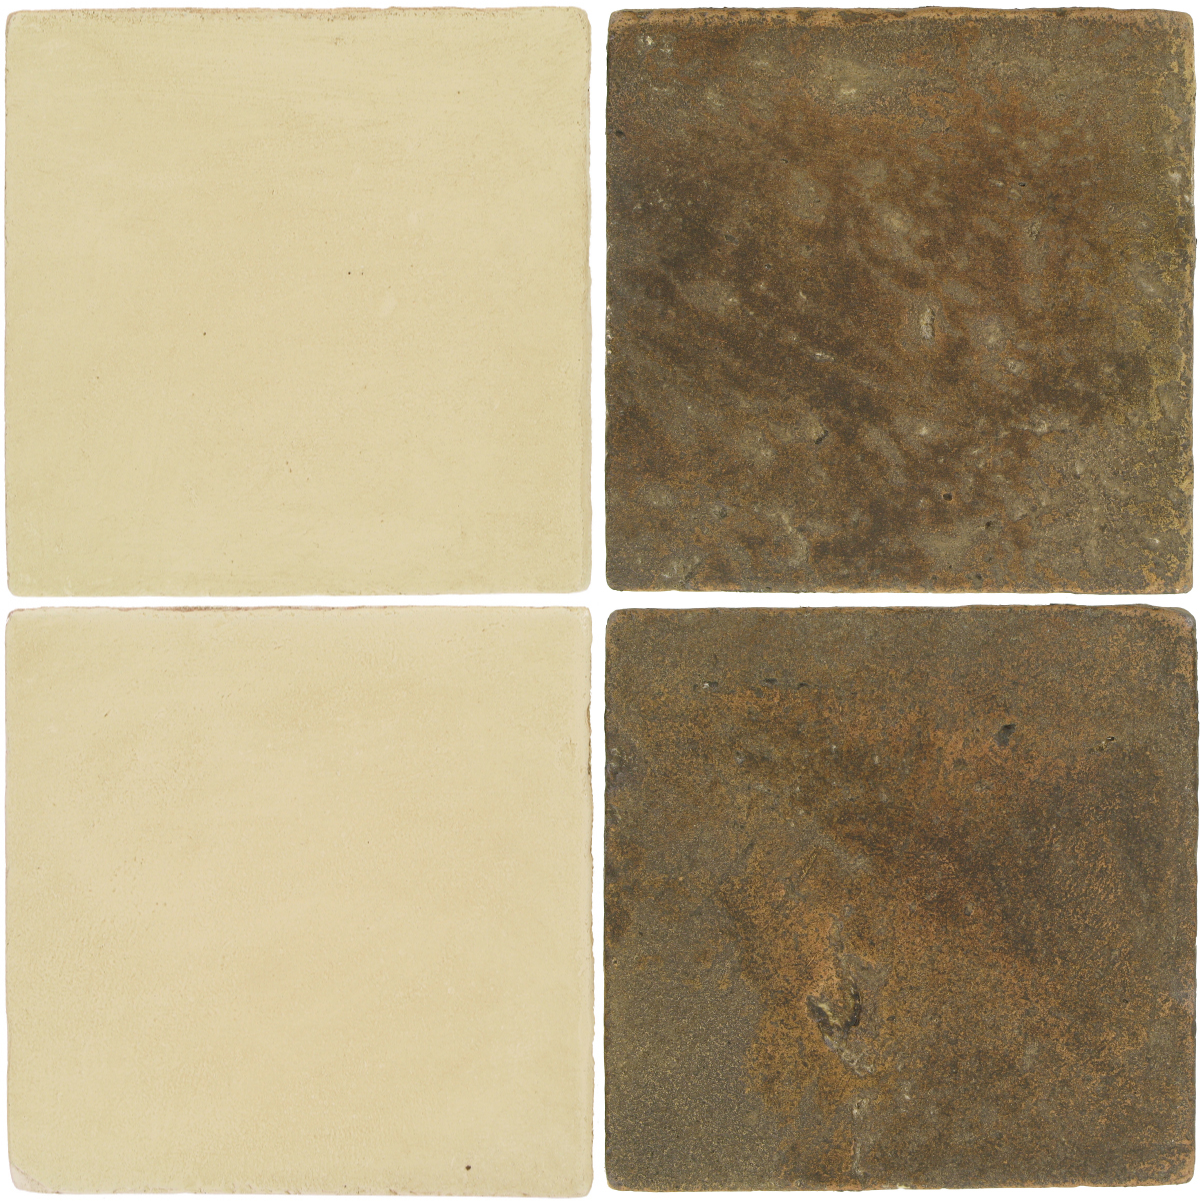 Pedralbes Antique Terracotta  2 Color Combinations  OHS-PGPW Pergamino White + VTG-PSVN Verona Brown